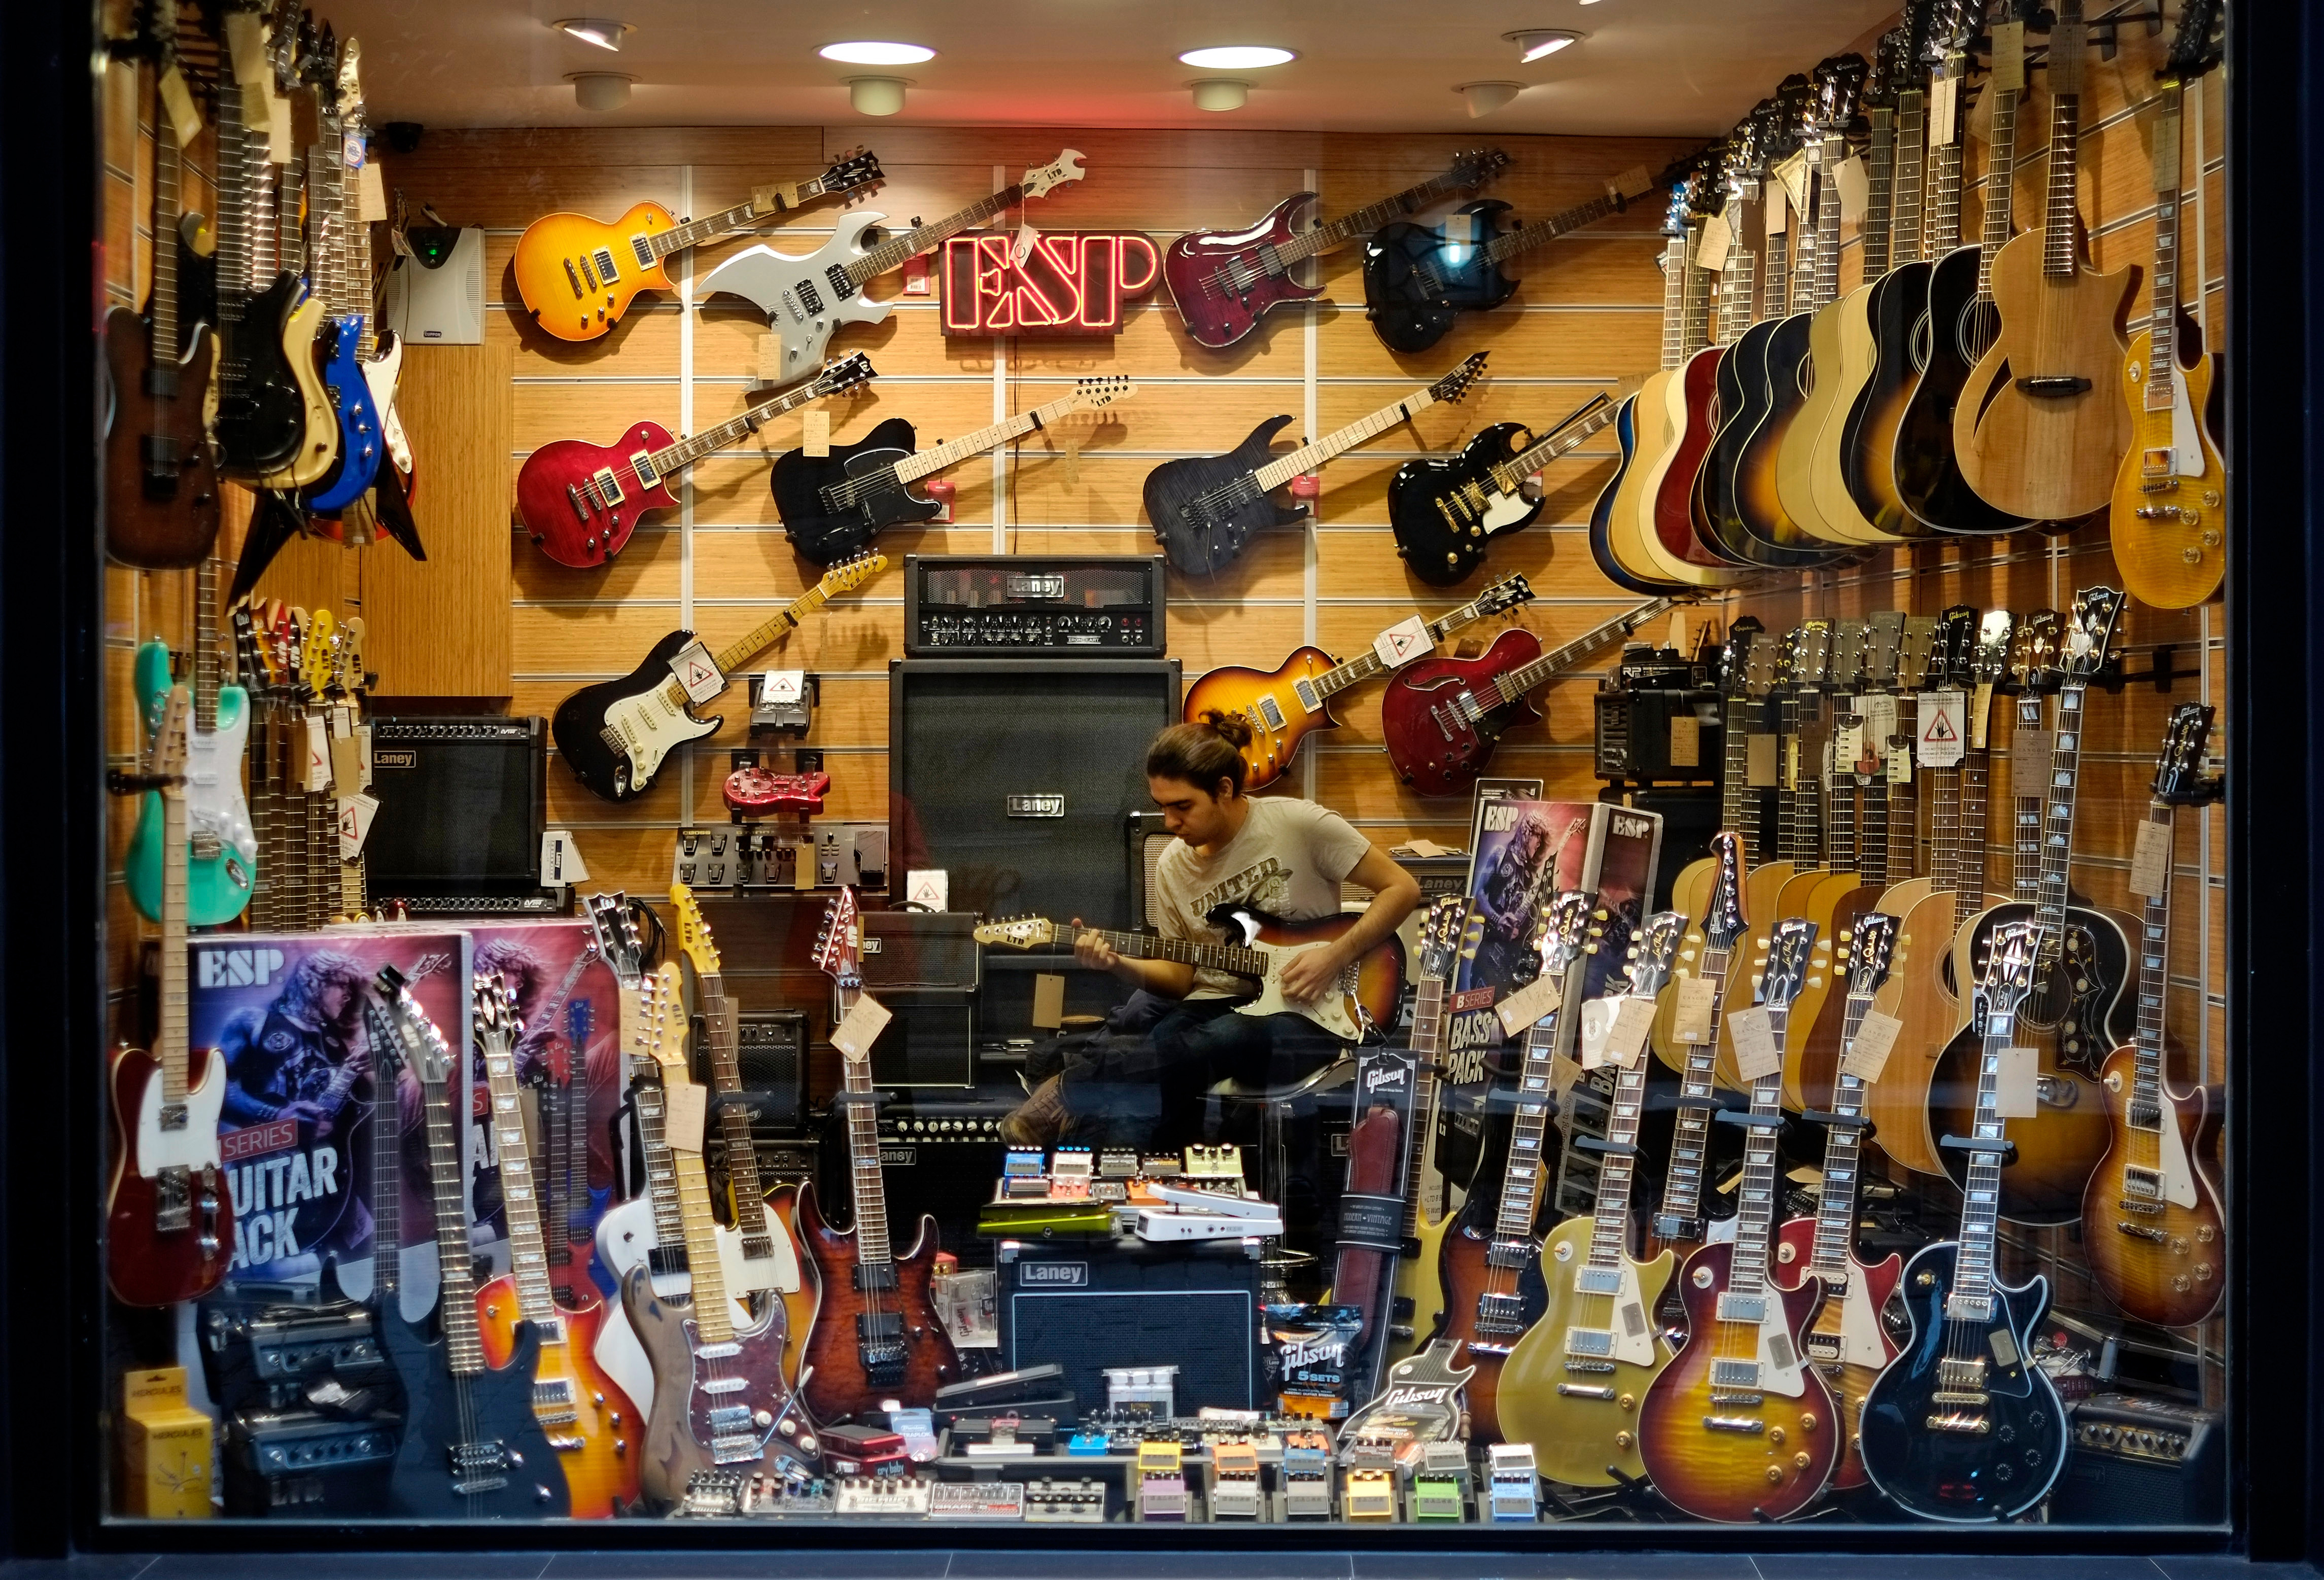 how to make er diagram amazing s musician record online home decorating services A man plays a guitar inside a musical instrument shop in Istanbul.